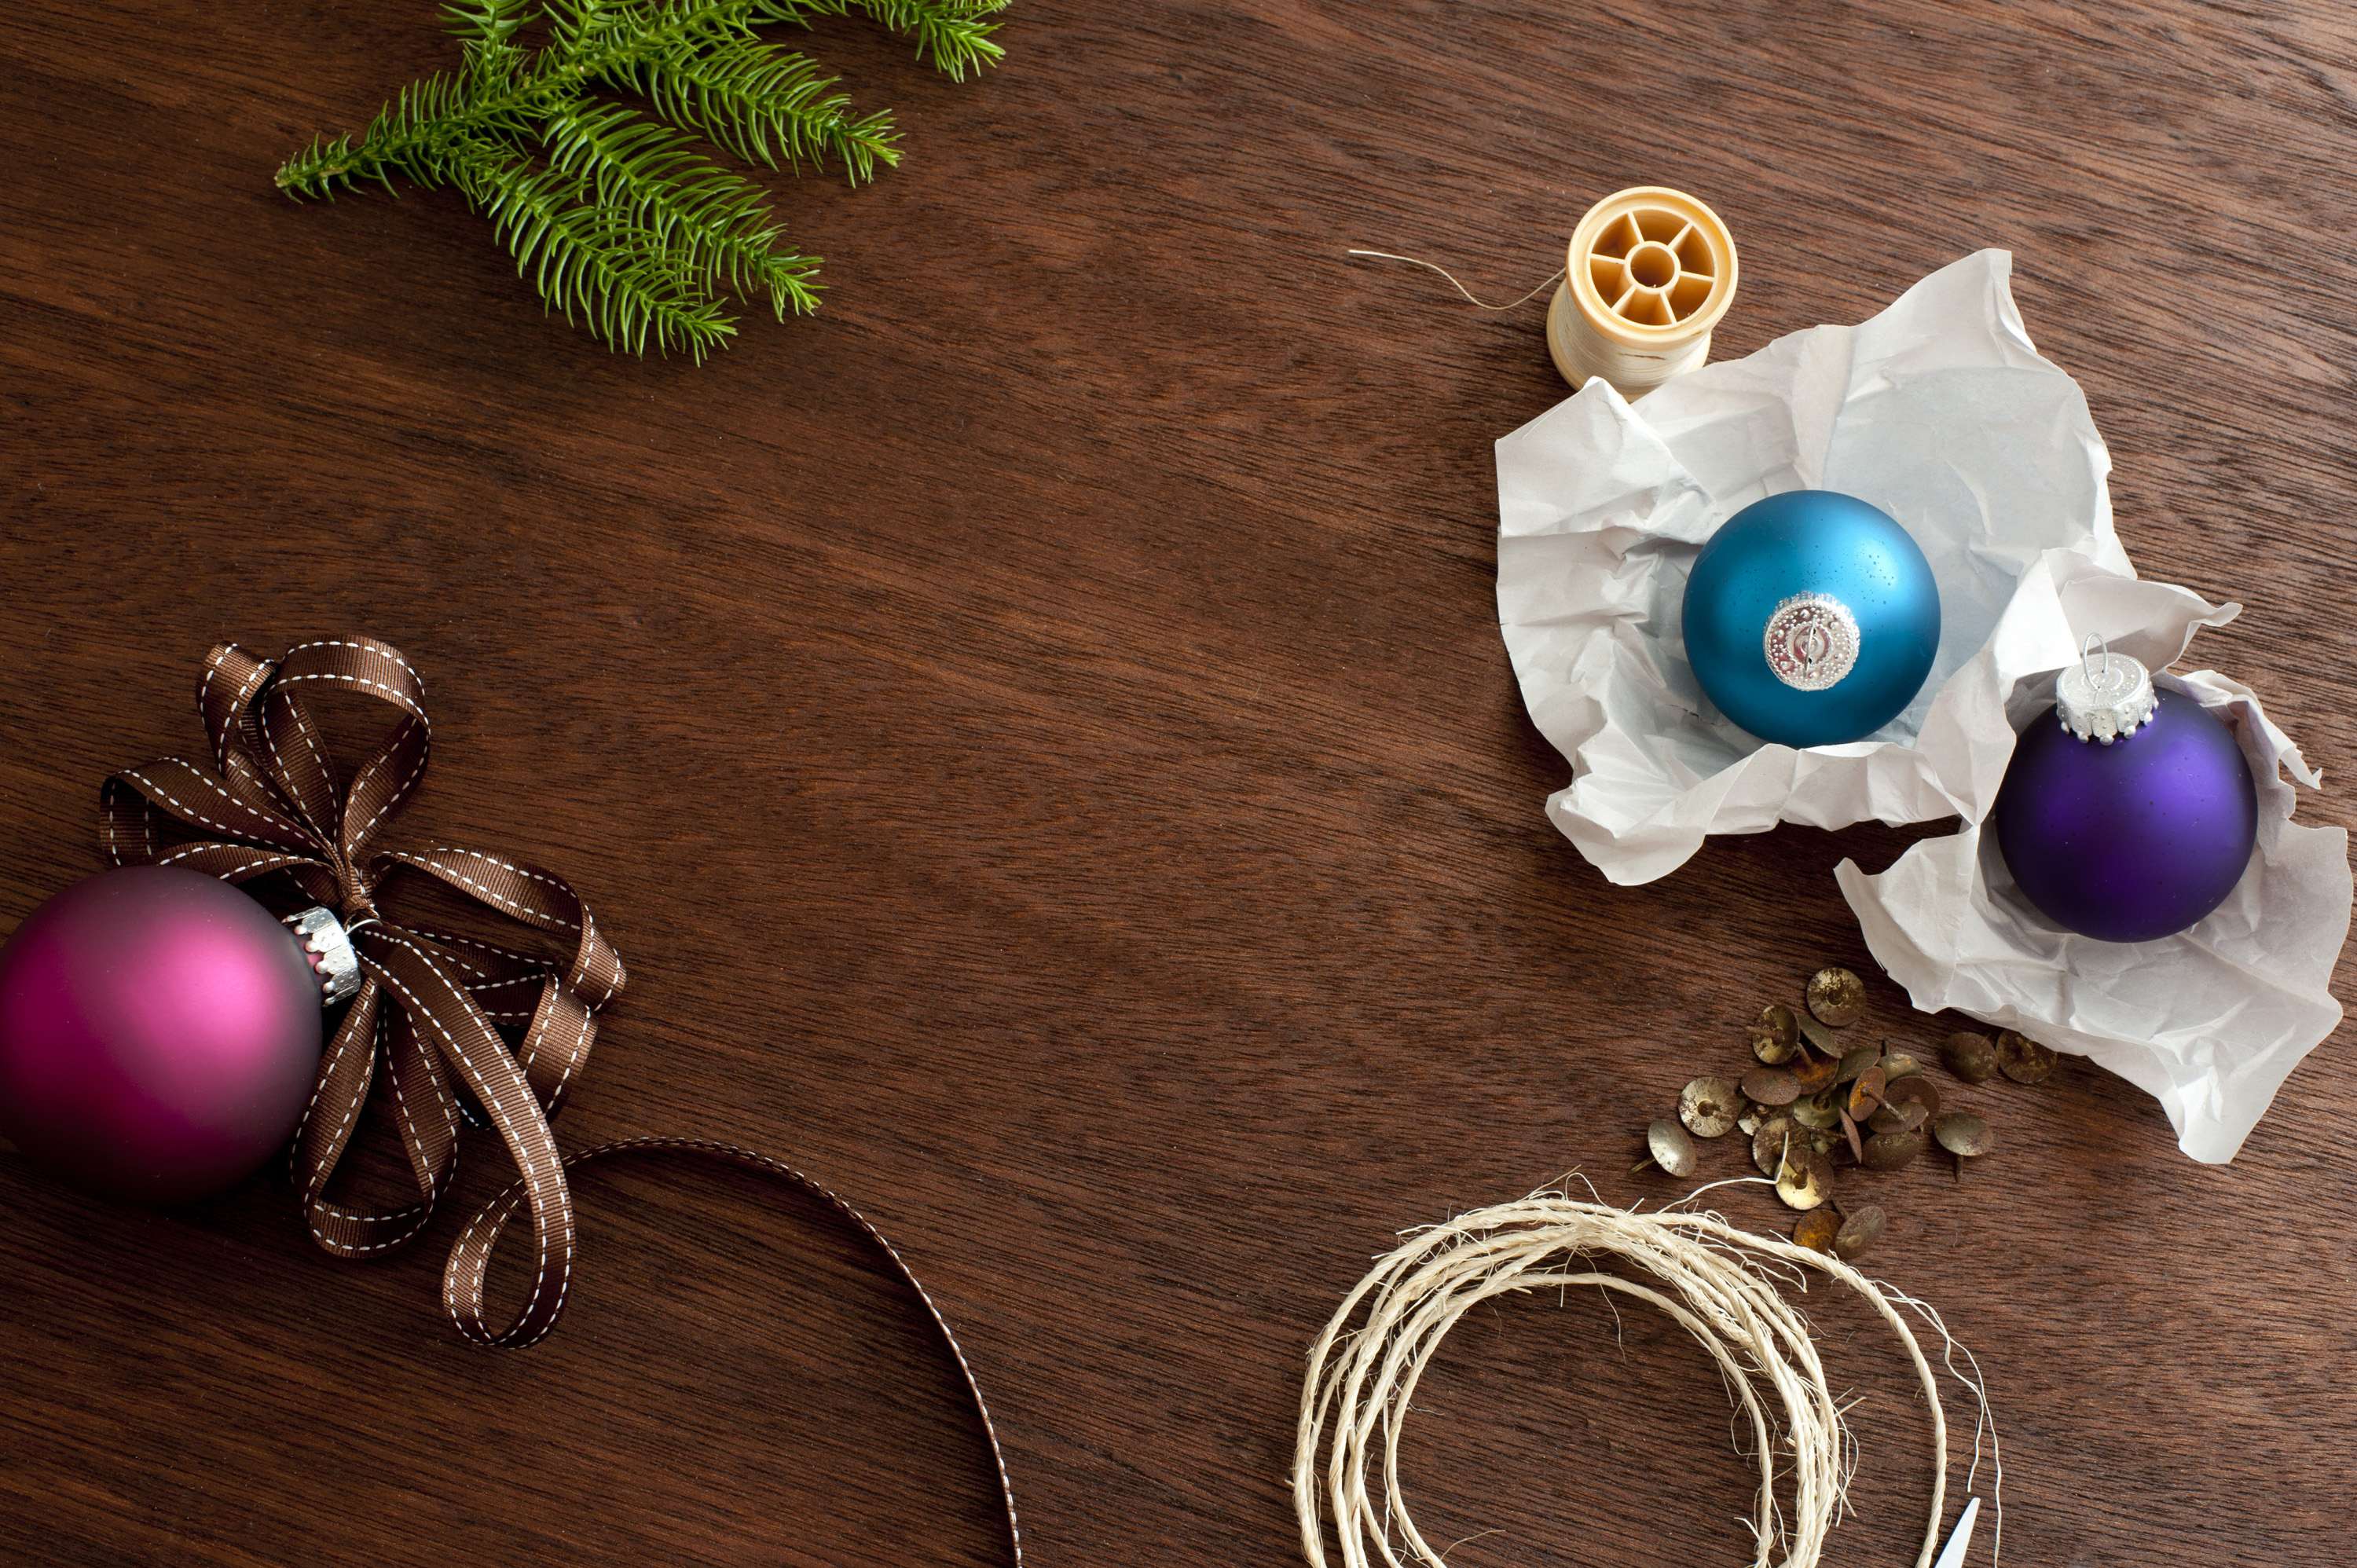 Christmas baubles and string on wooden surface